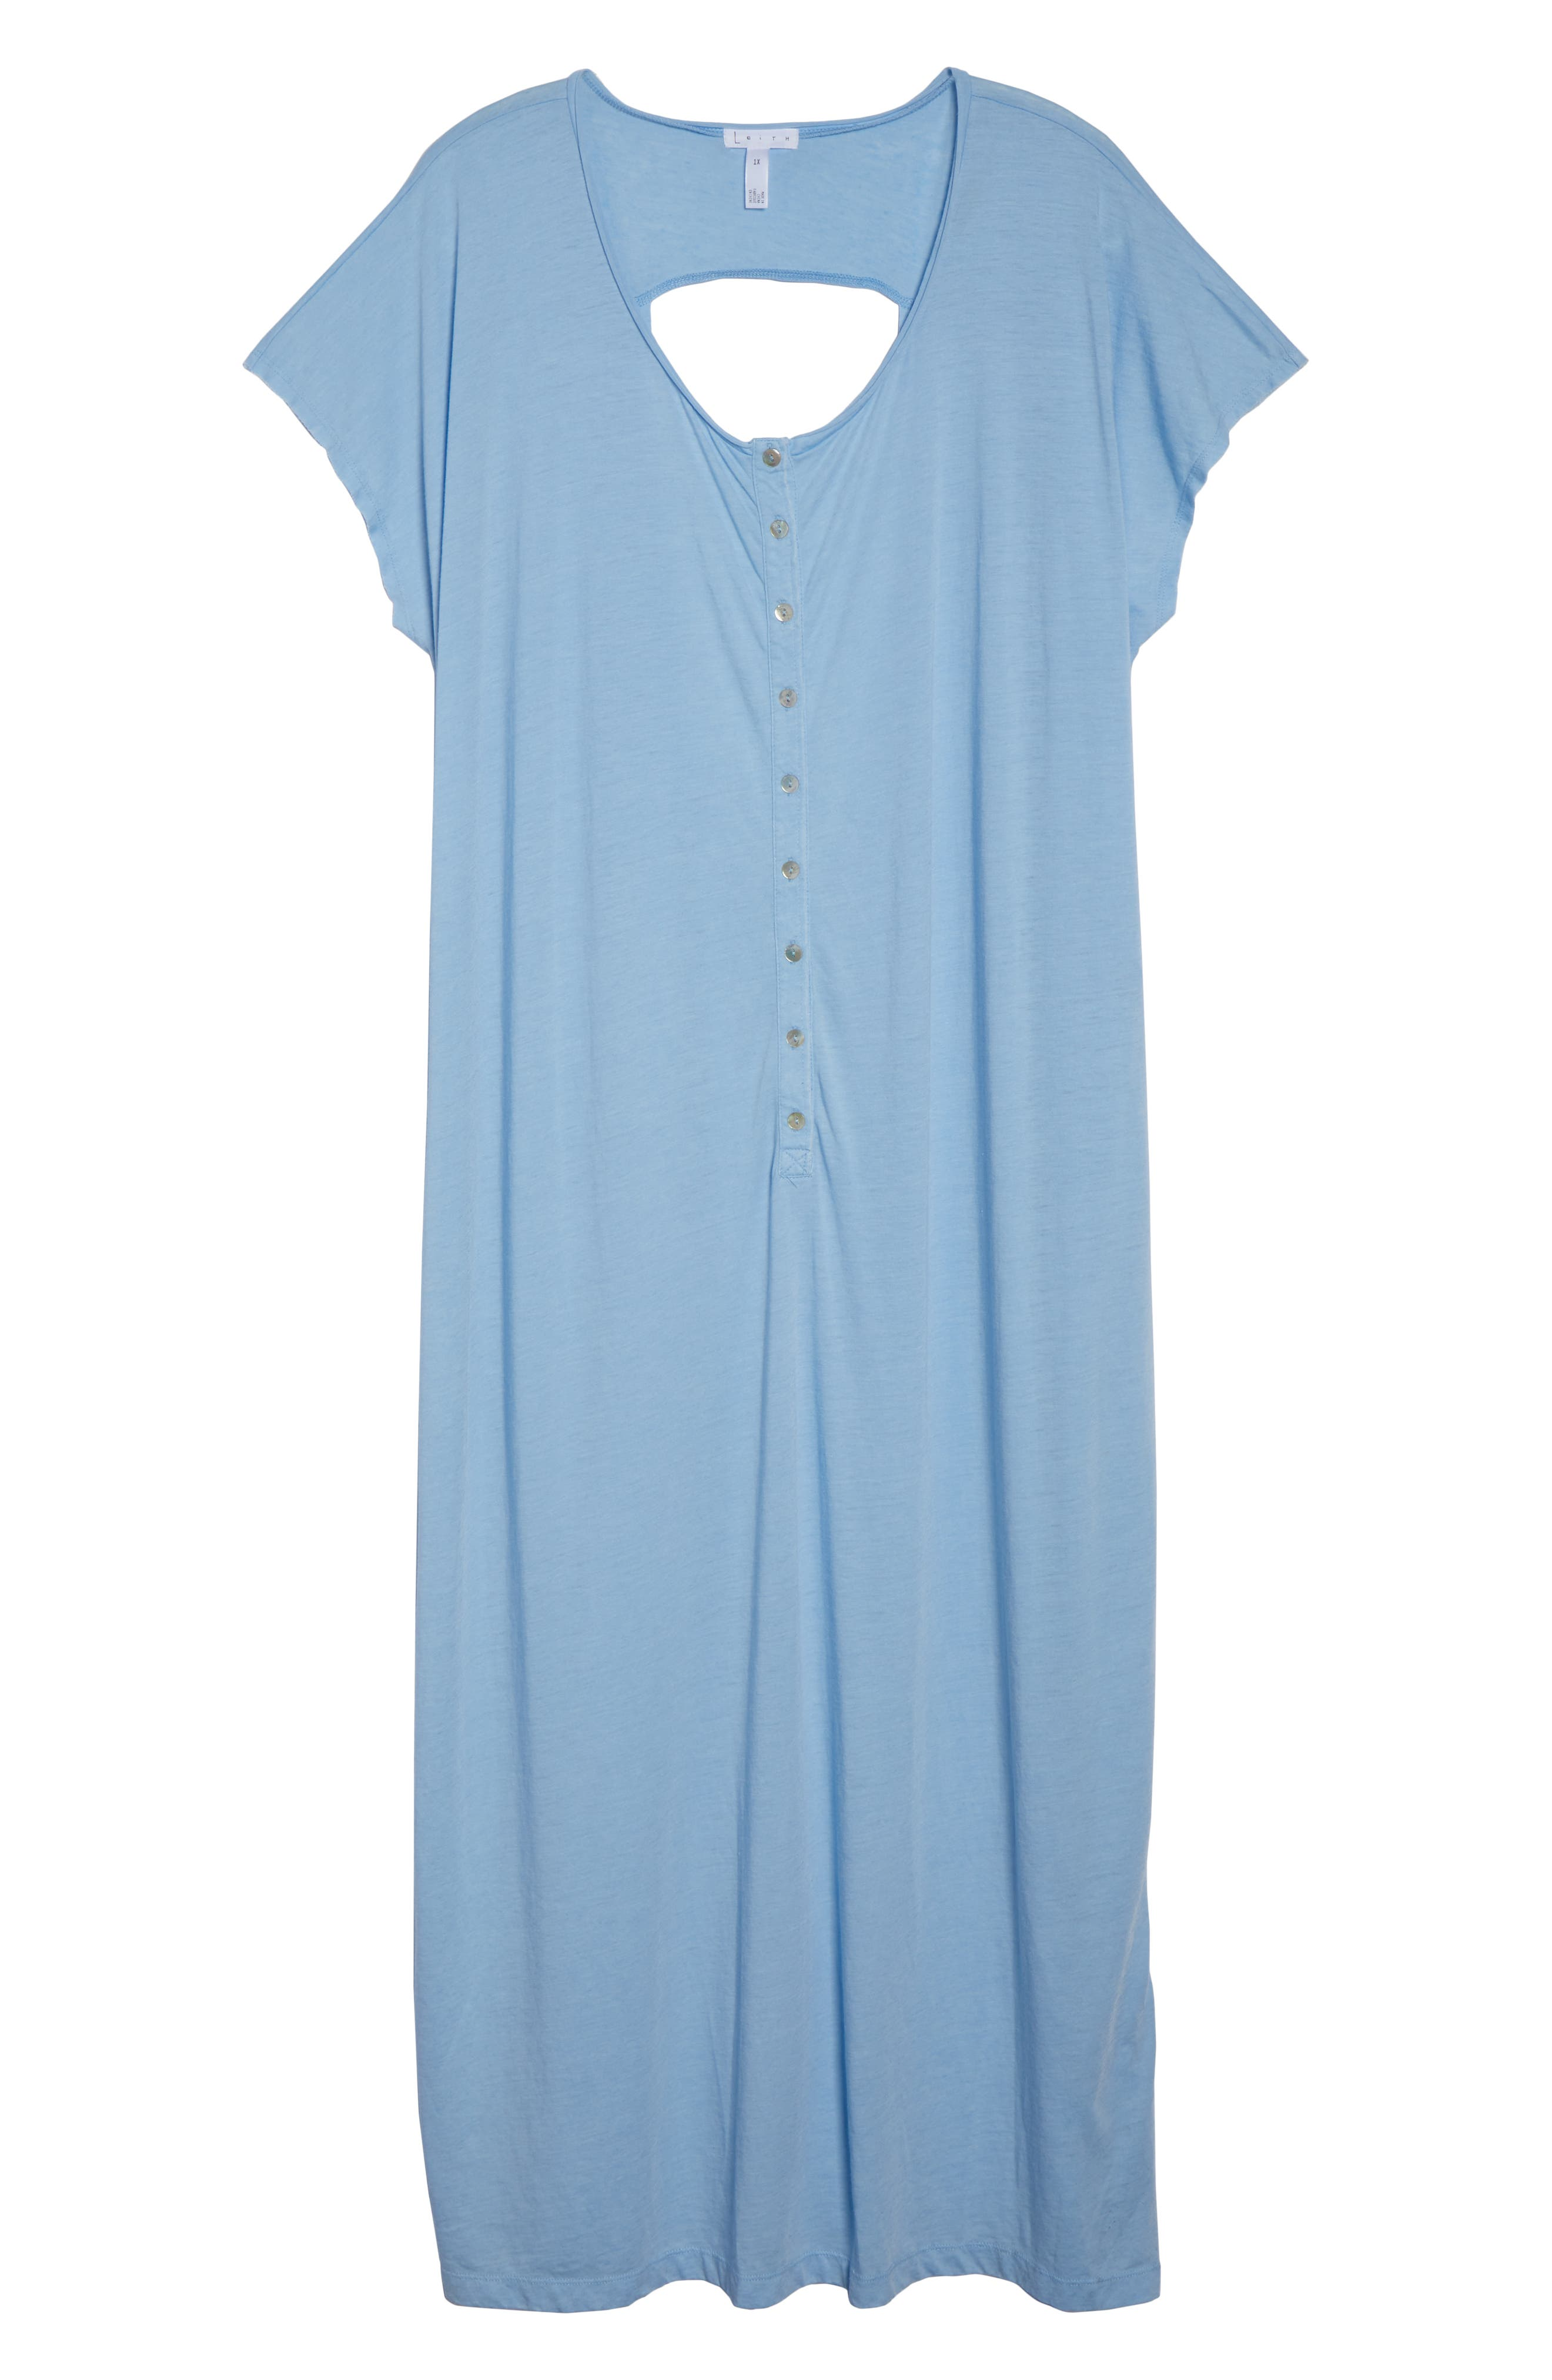 Henley Cover-Up Dress,                             Alternate thumbnail 6, color,                             BLUE BELL